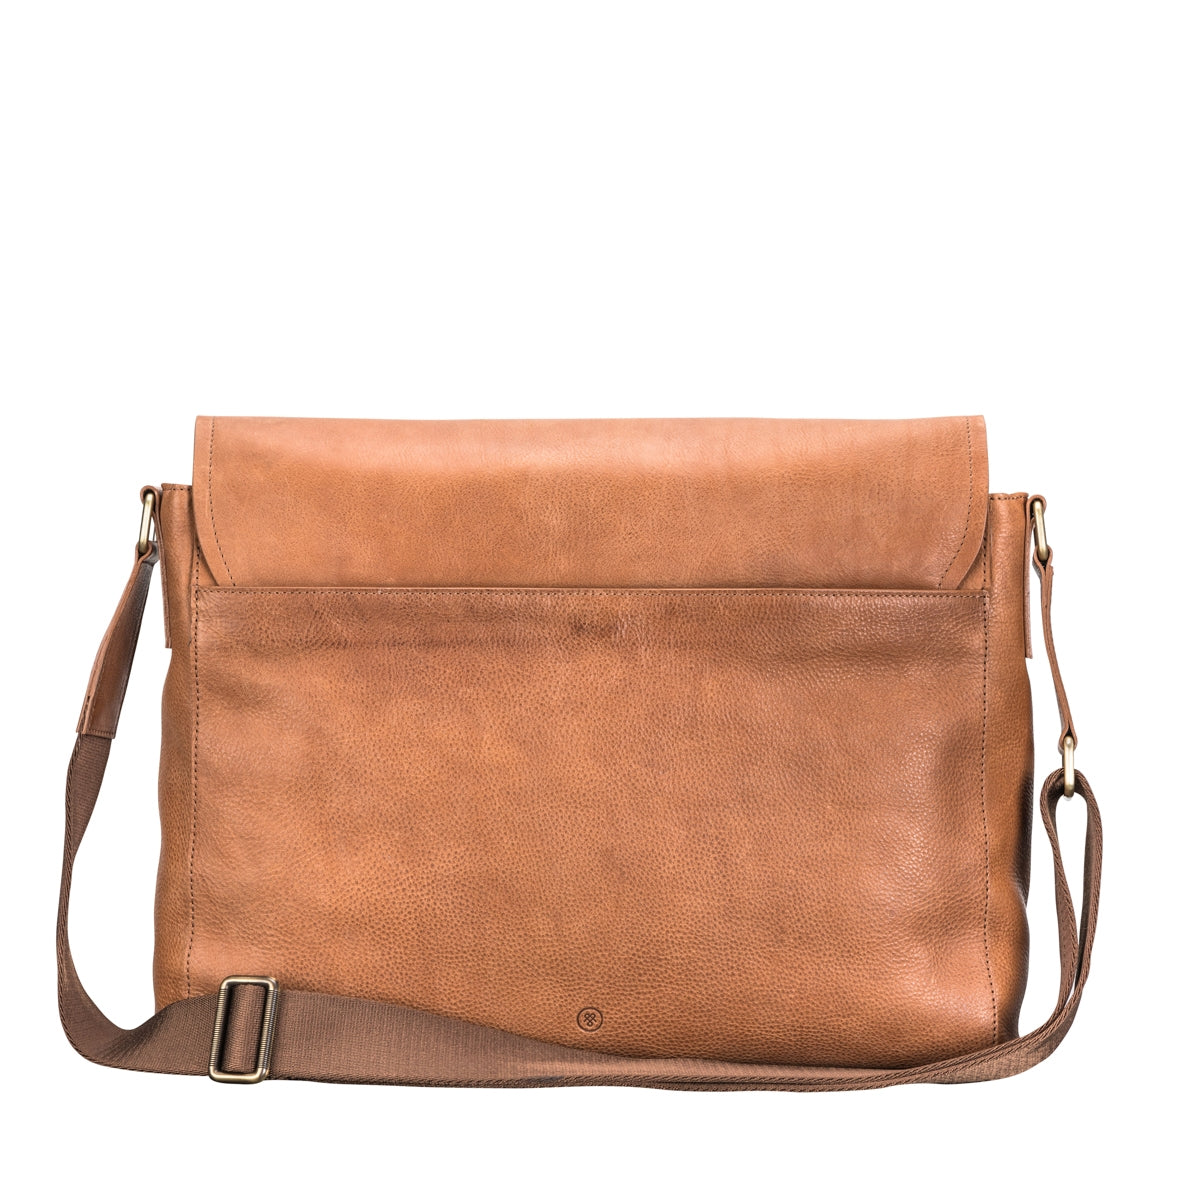 Image 4 of the 'Ravenna' Men's Leather Classic Satchel Bag